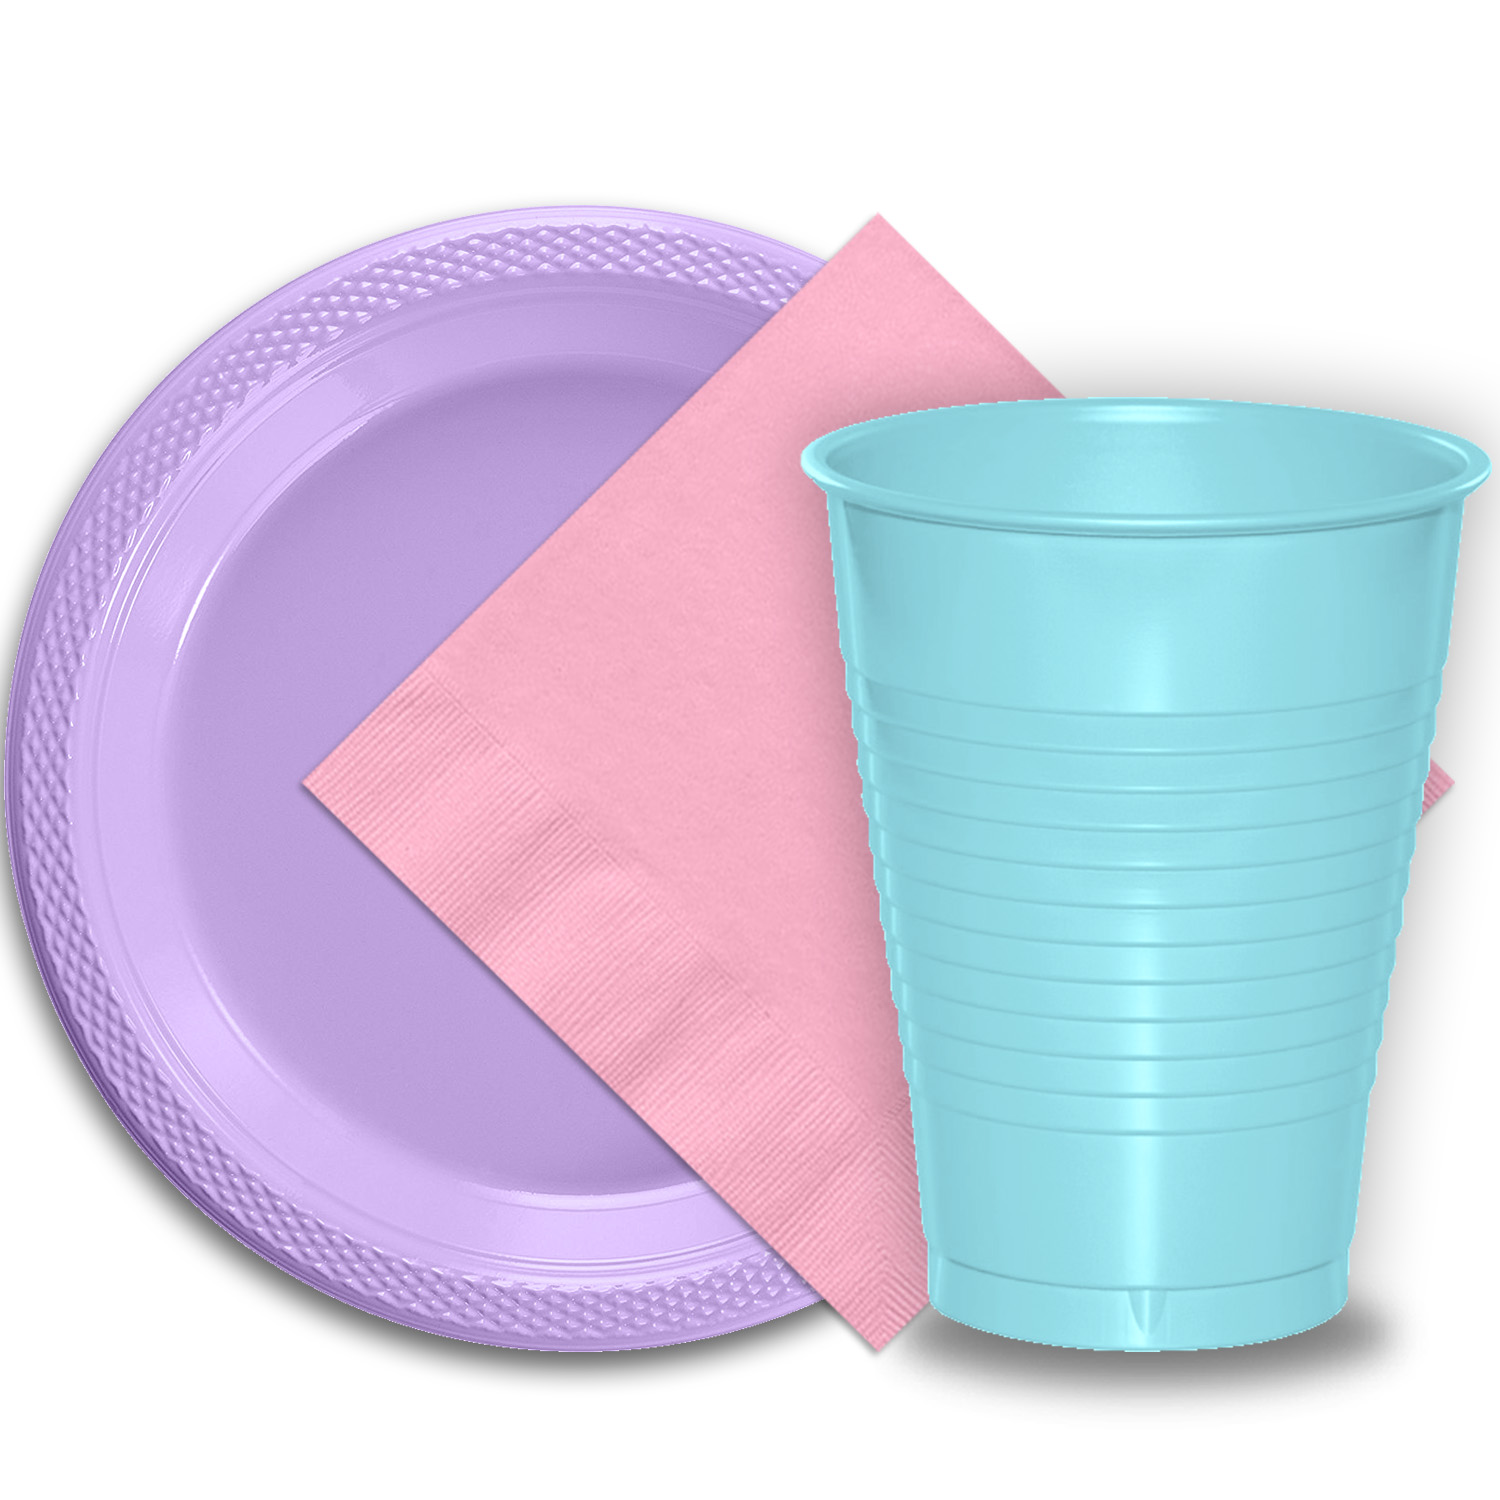 "50 Lavender Plastic Plates (9""), 50 Light Blue Plastic Cups (12 oz.), and 50 Pink Paper Napkins, Dazzelling Colored Disposable Party Supplies Tableware Set for Fifty Guests."